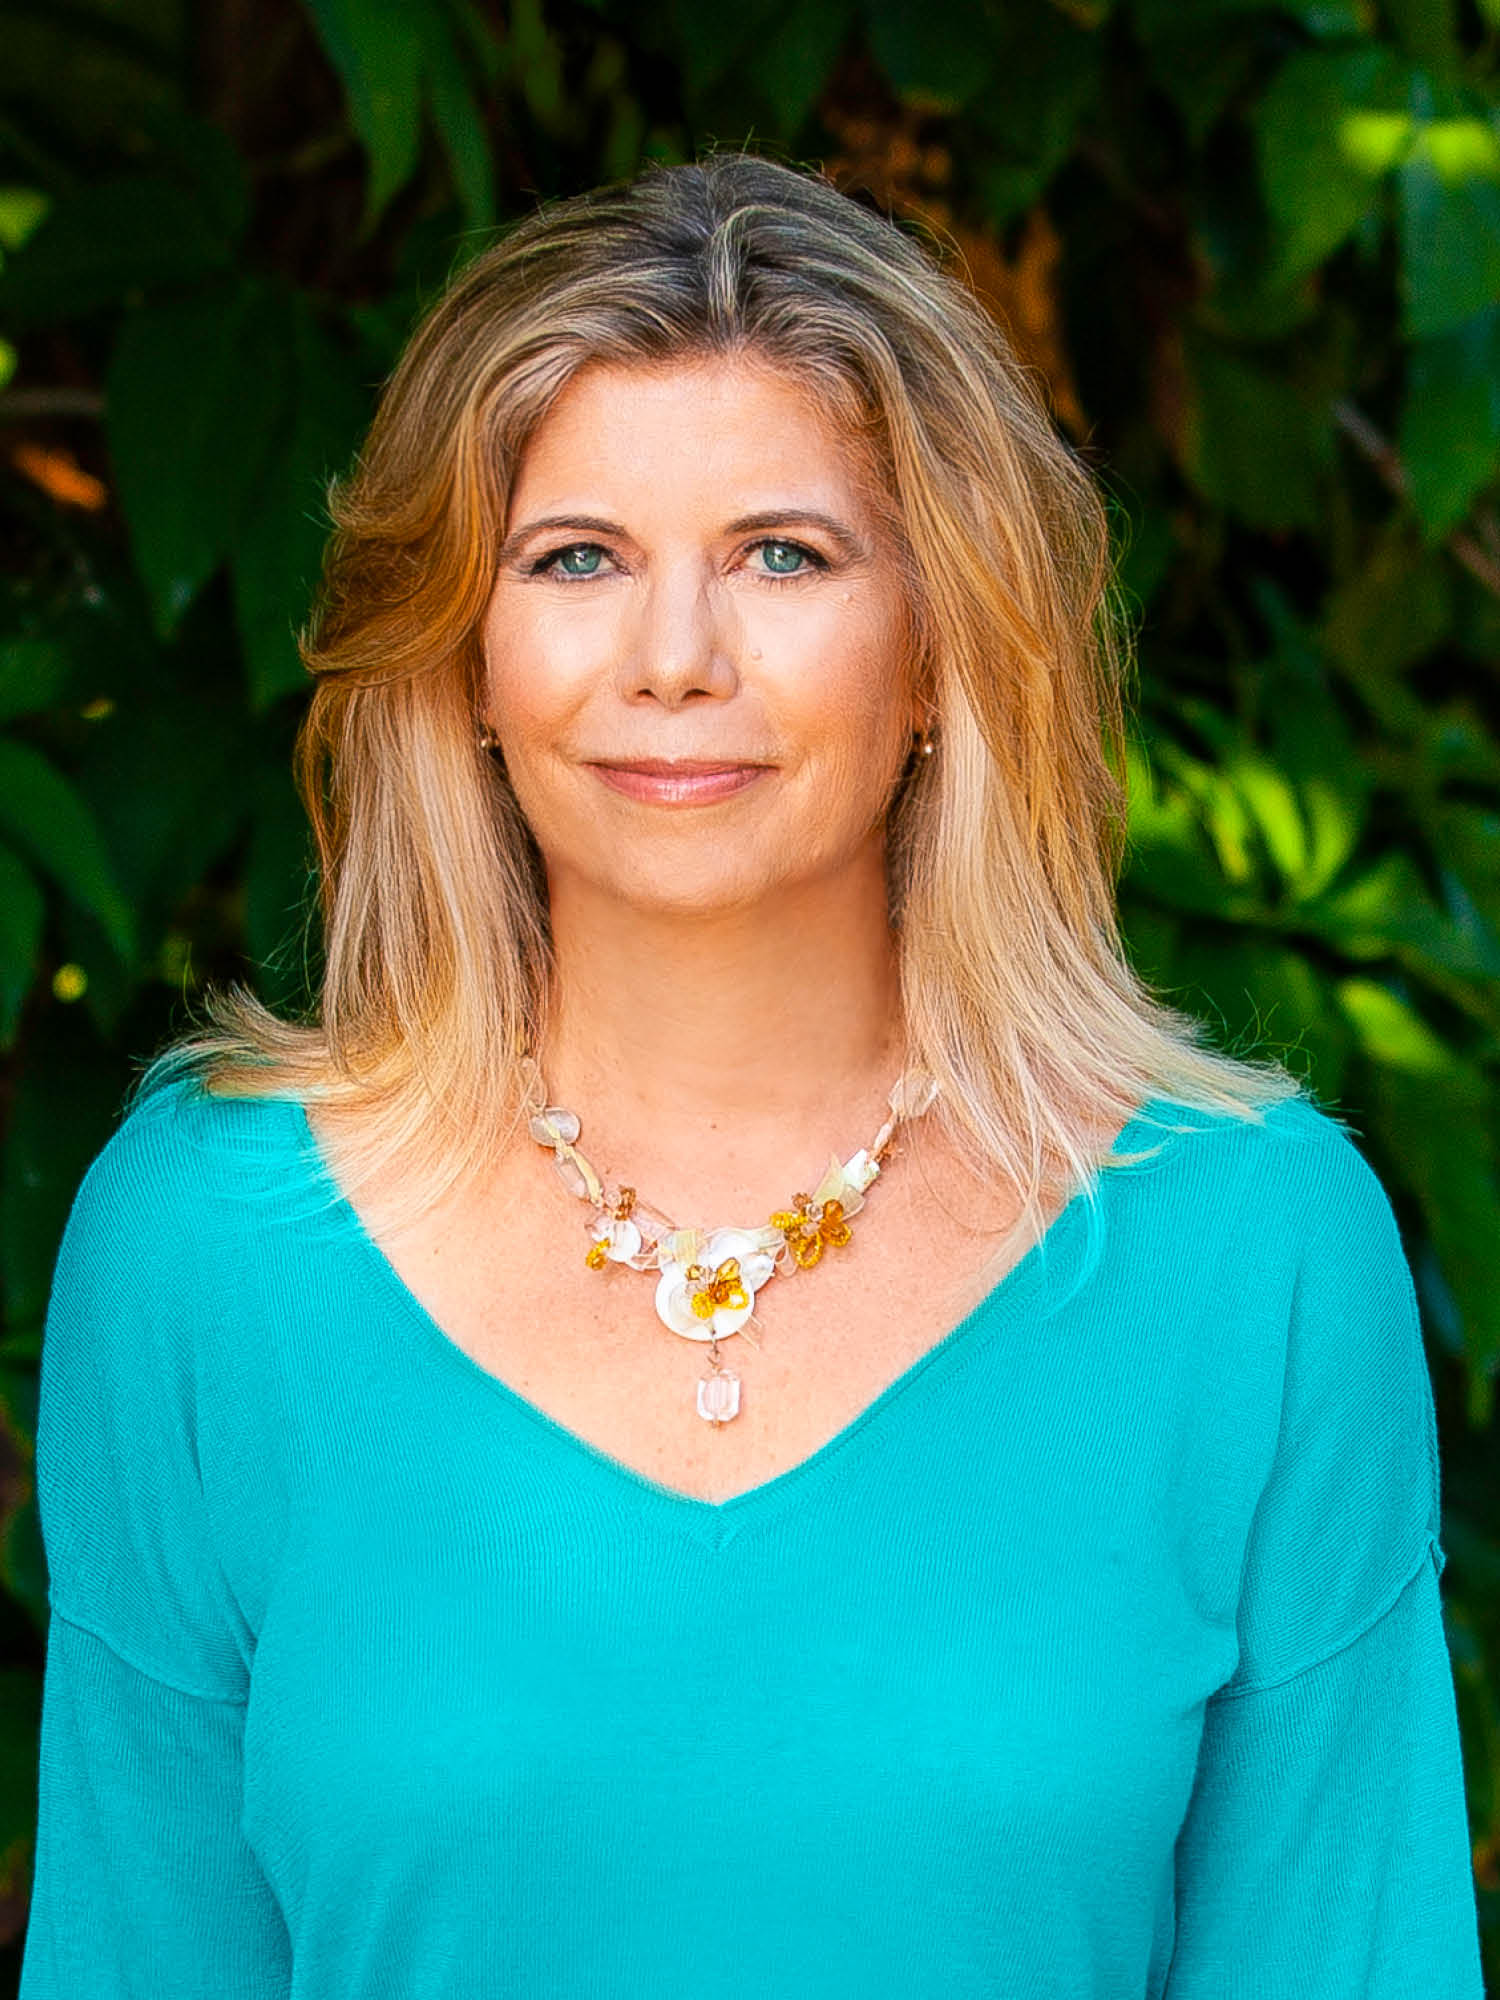 Kimberly Owen, a top realtor in South Florida for Corcoran, a real estate firm in Delray Beach/Gulf Stream.